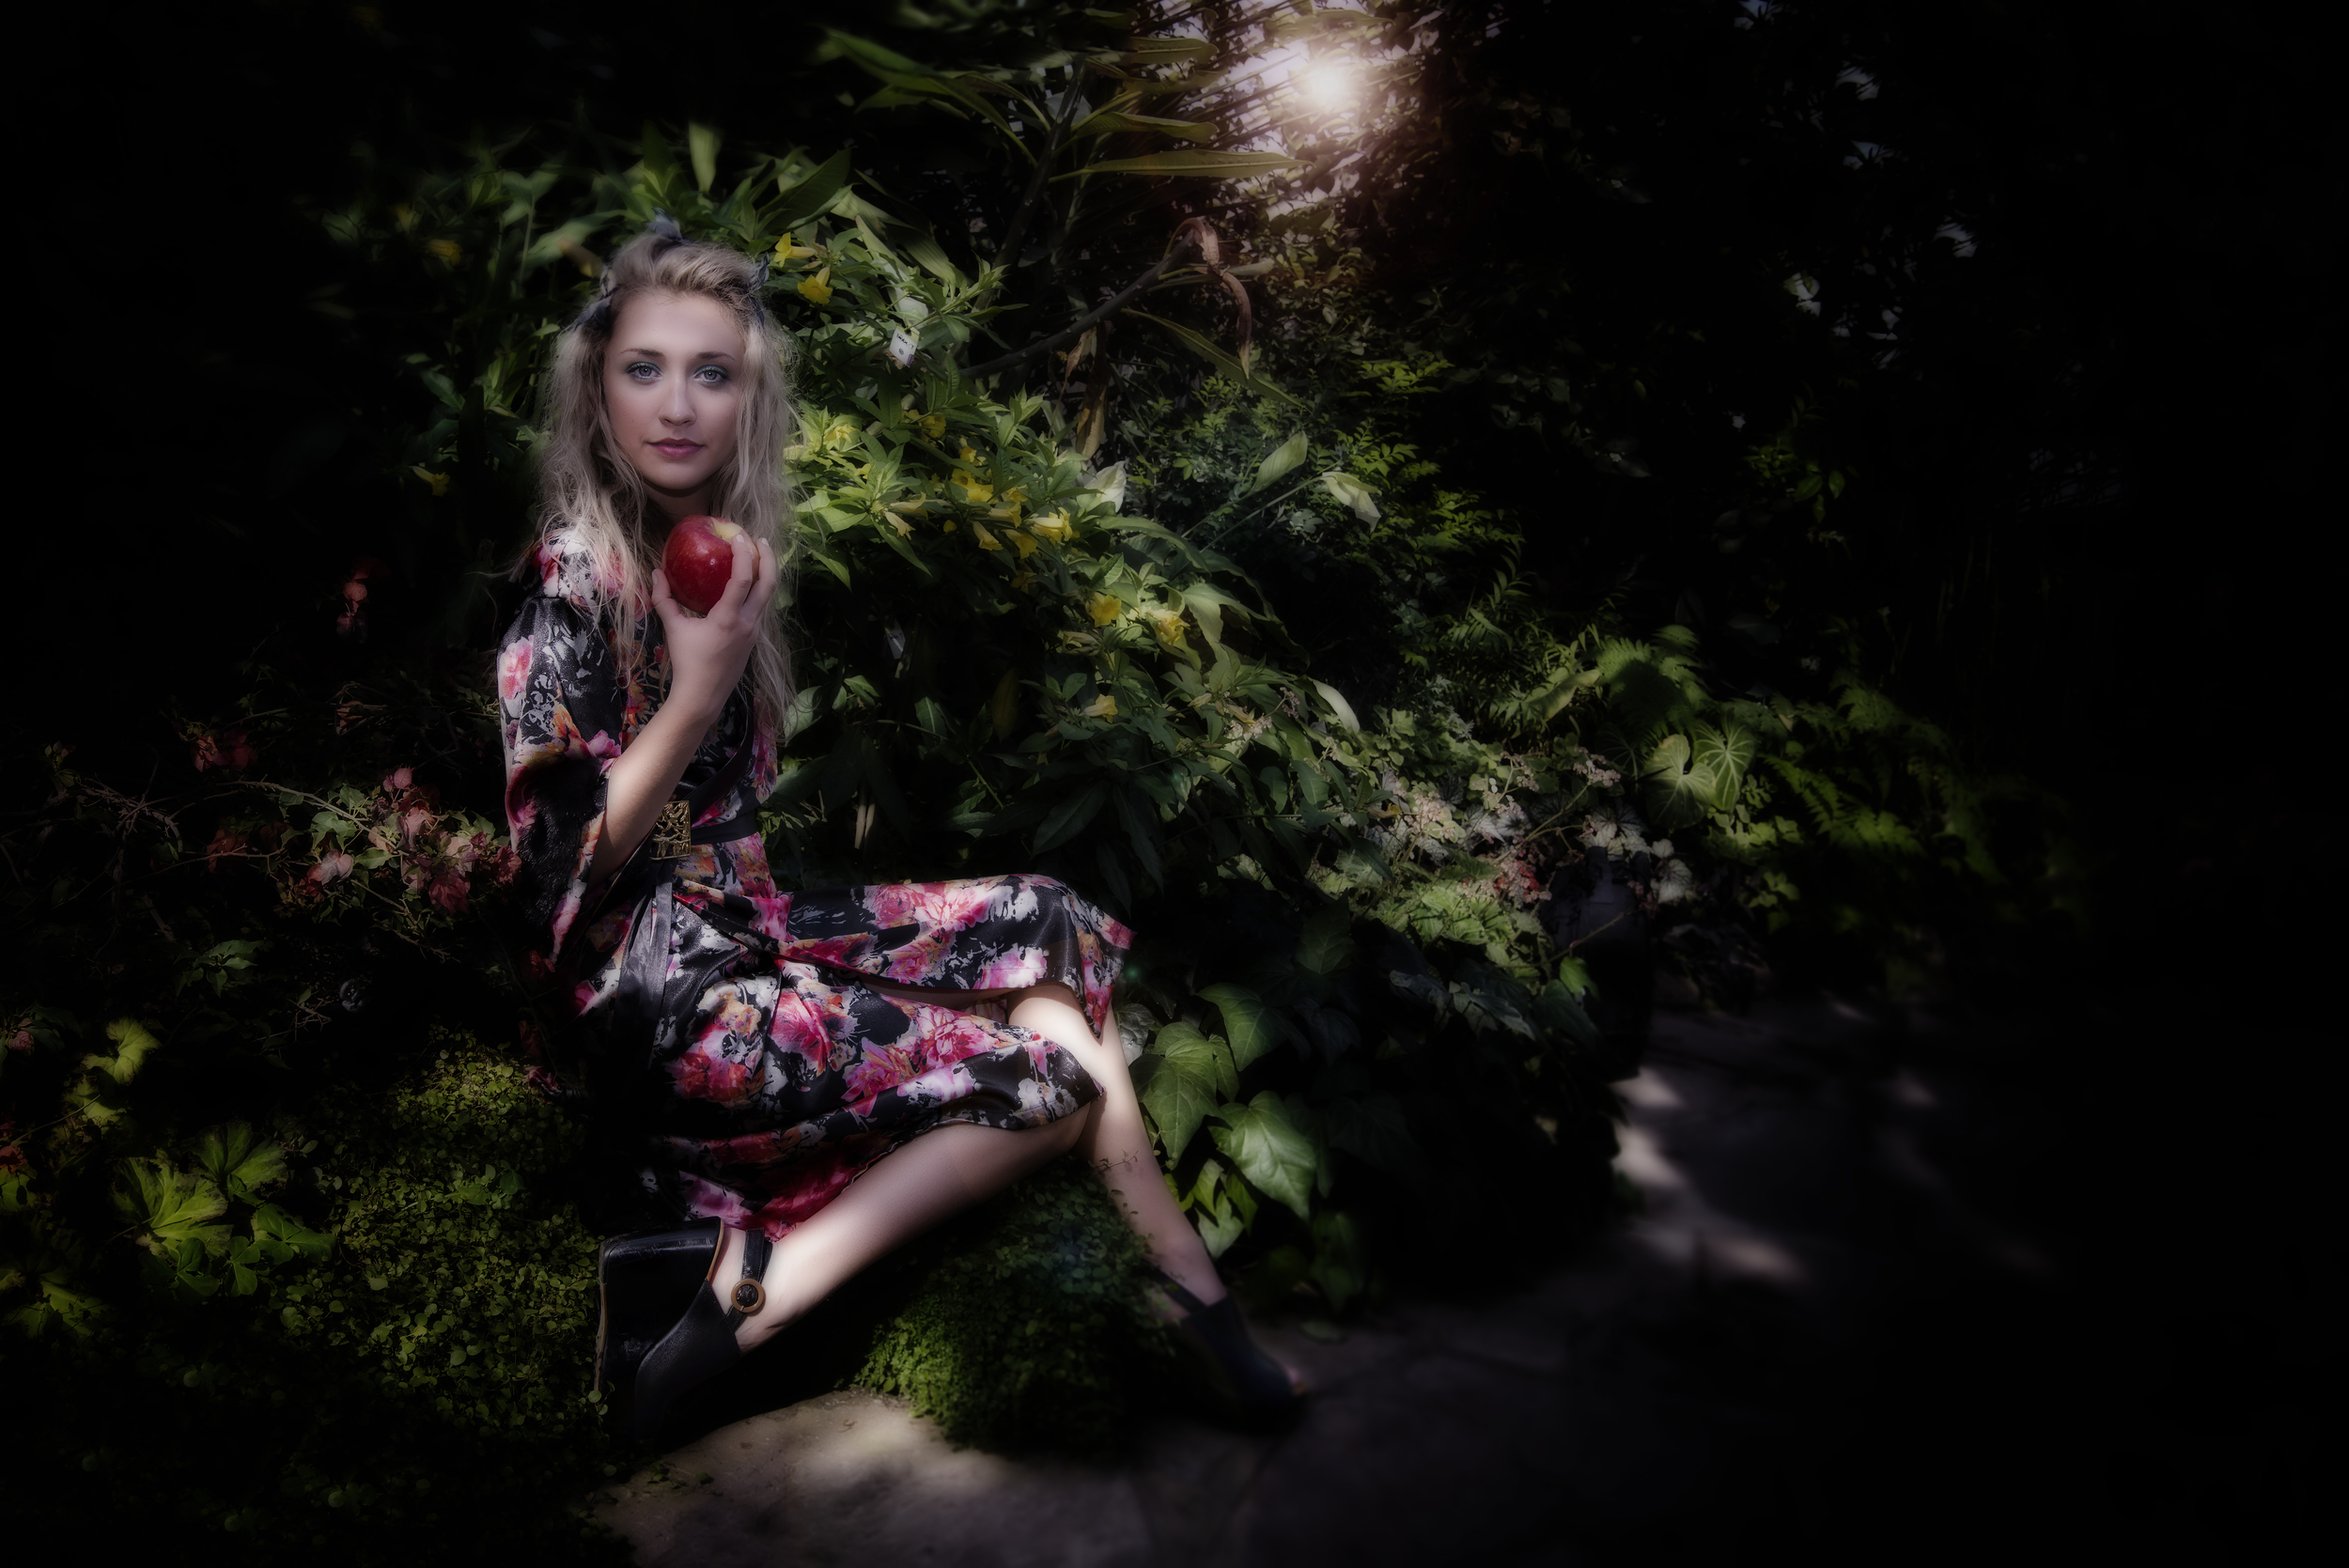 photo by Andy Burleigh on location at the Gage Park Tropical Greenhouse with model Amy.